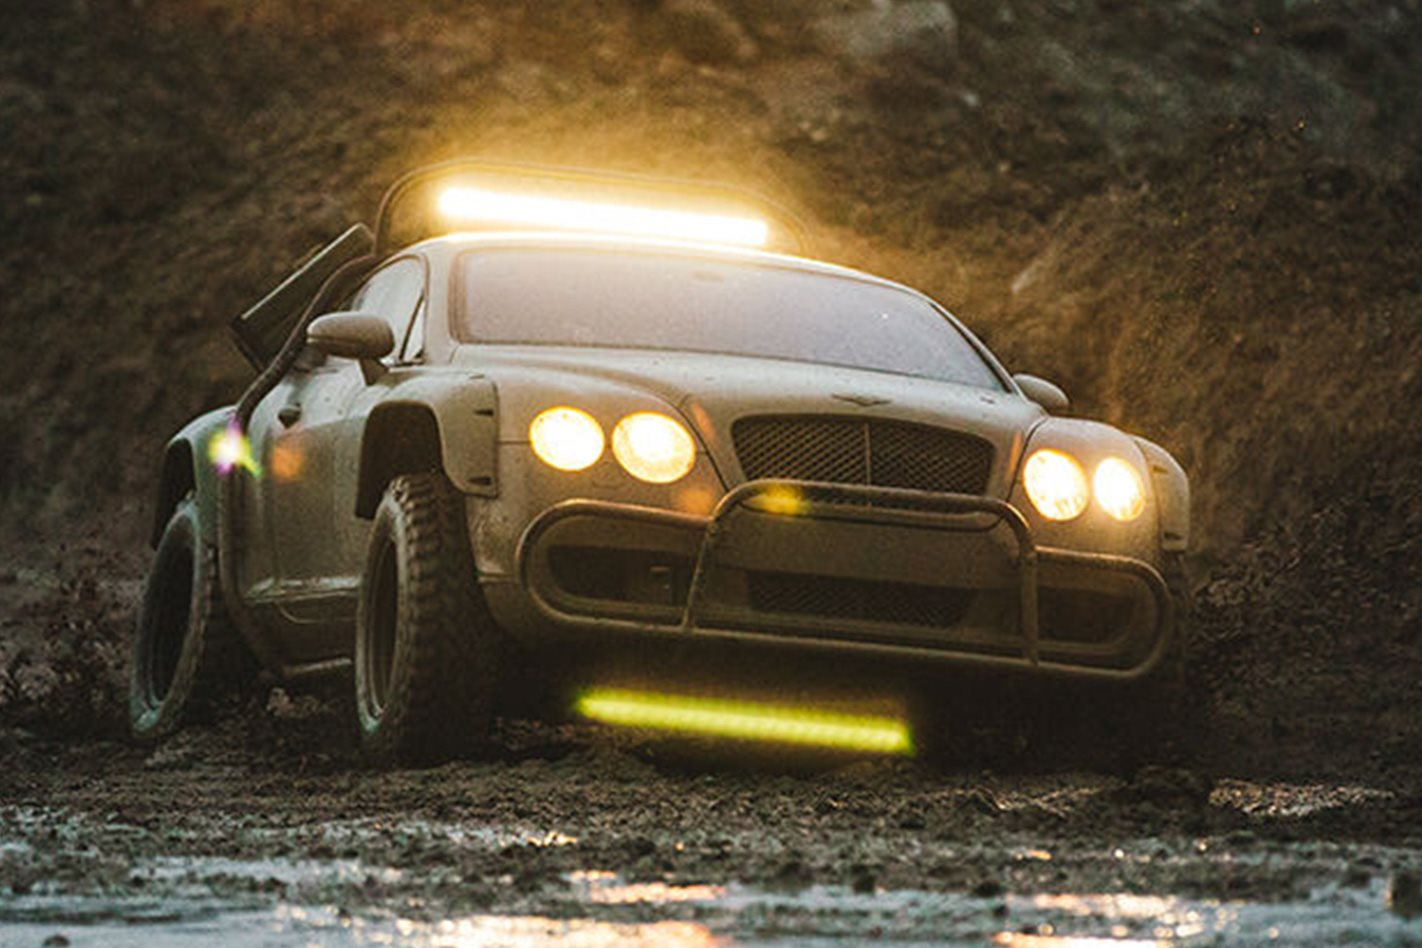 Bentley-Continental-GT-rally-car-headlights.jpg